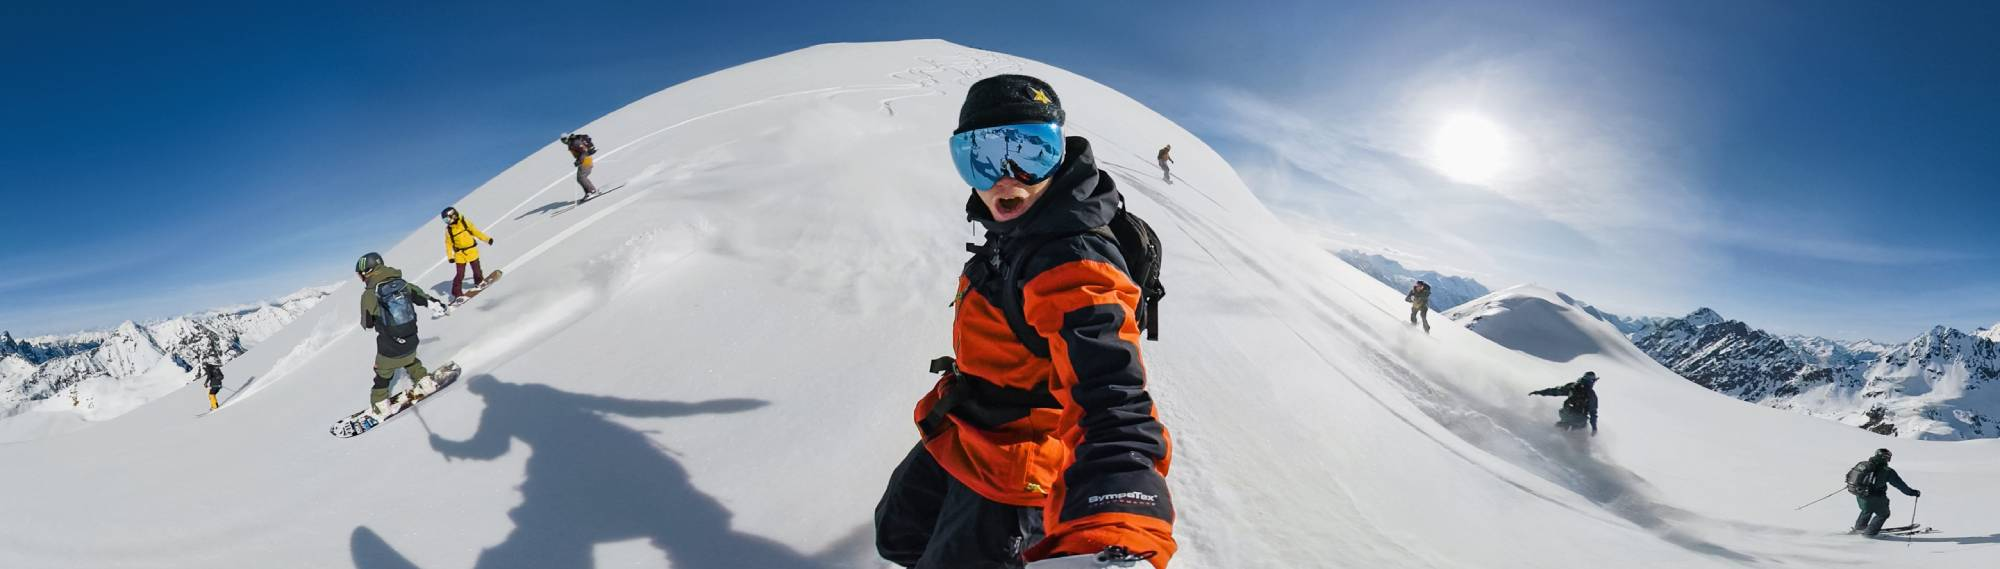 270° panoramic photo of snowboarders and skiers on snowy mountain peak, shot on the GoPro MAX 360 action camera